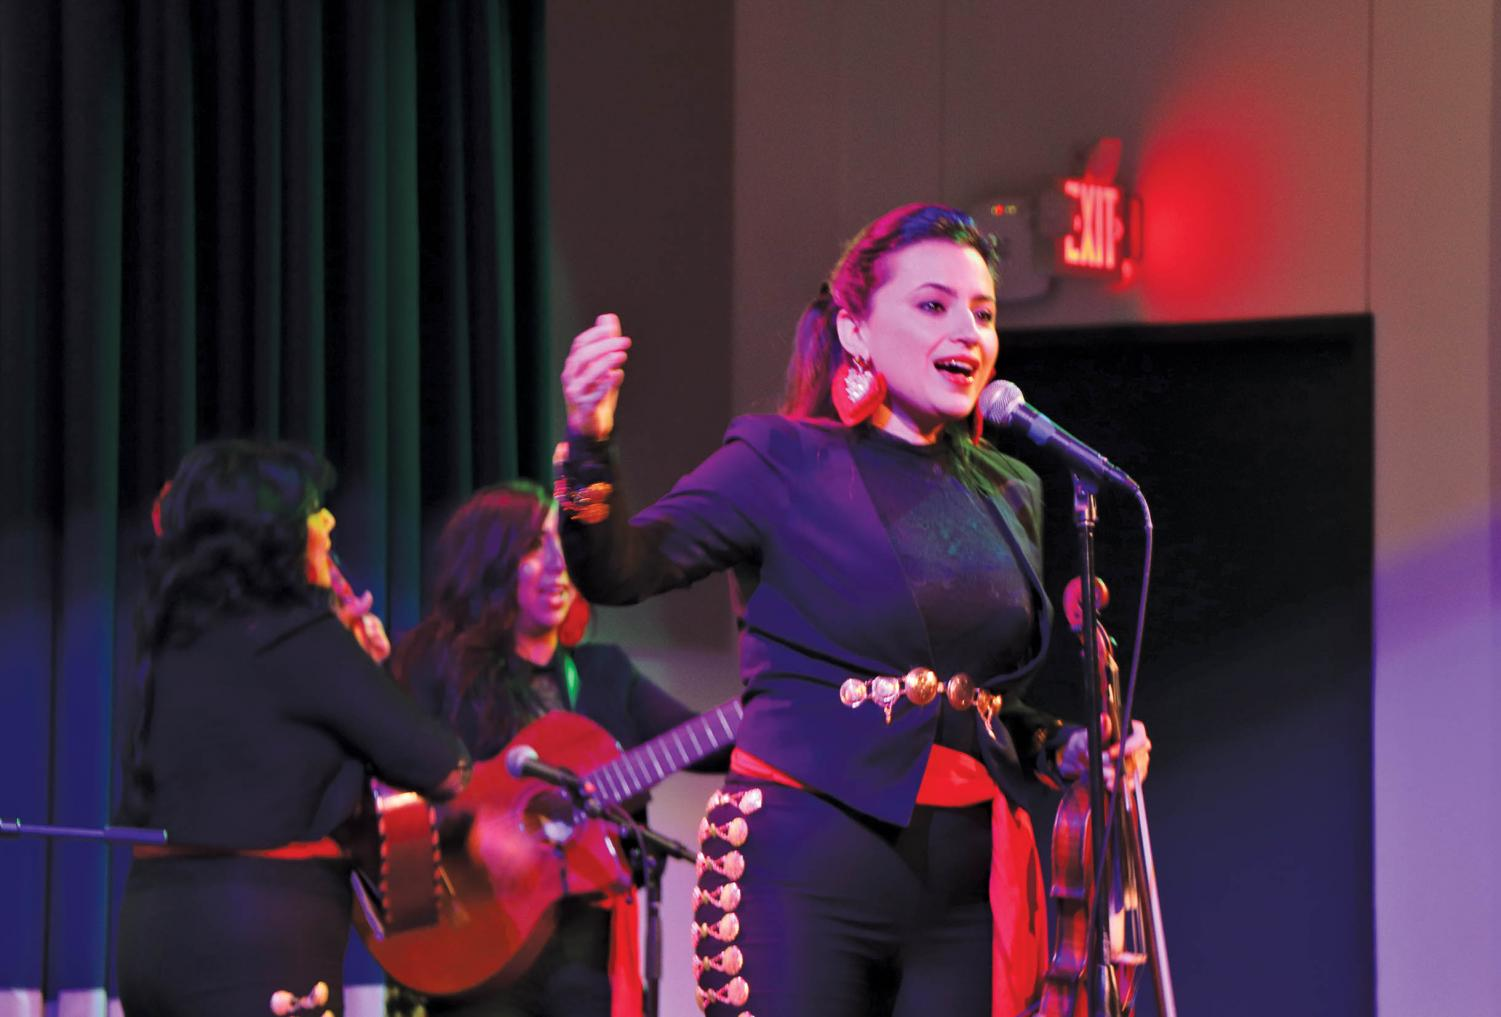 Vanessa del Fierro  leads the Las Coronelas in song and dance. Del Fierro founded the band back in 2010.